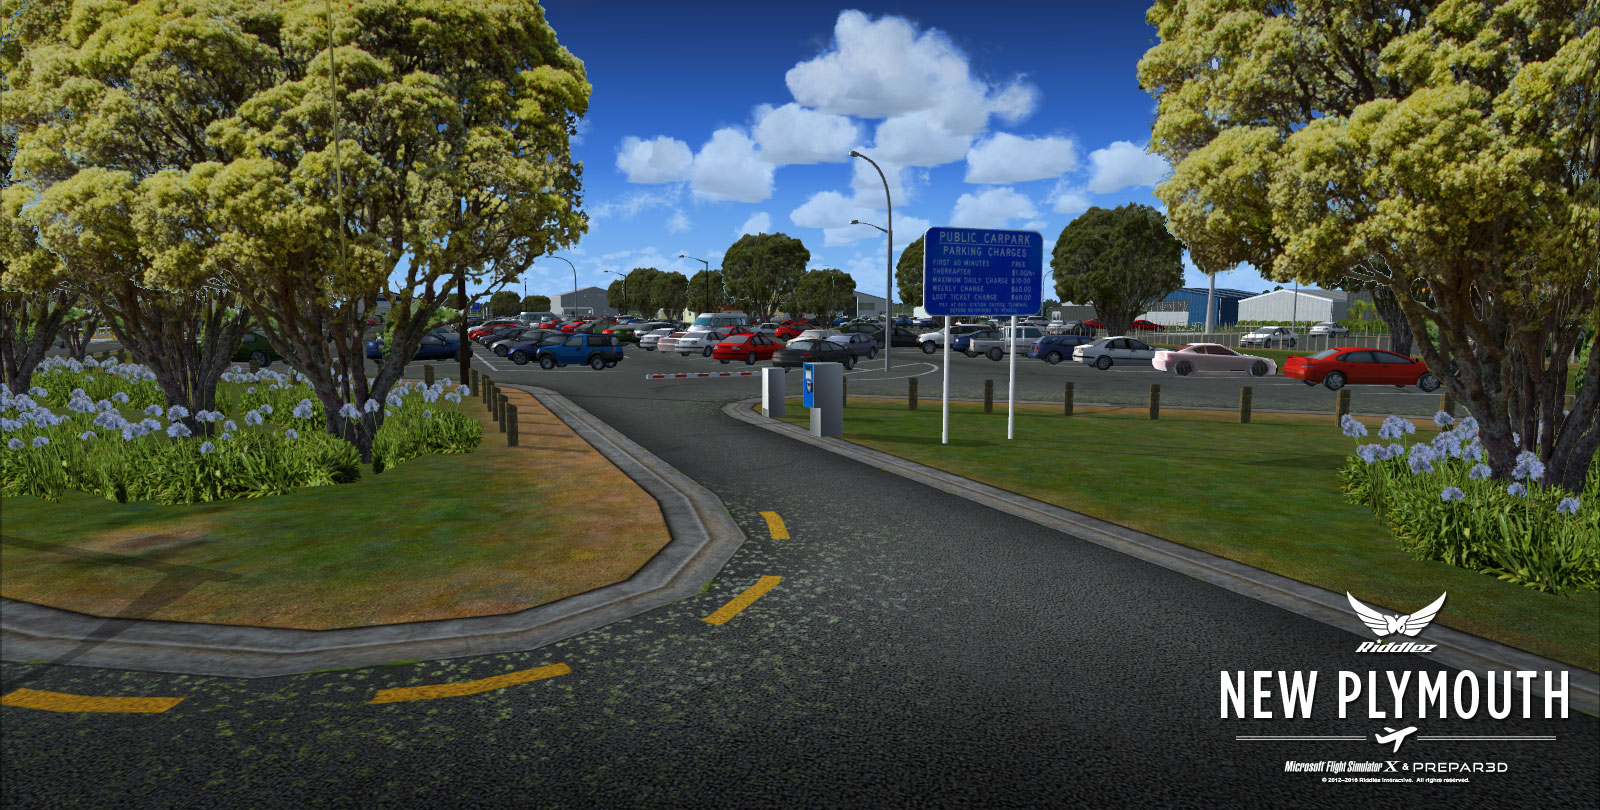 New Plymouth (NZNP) | Riddlez Interactive